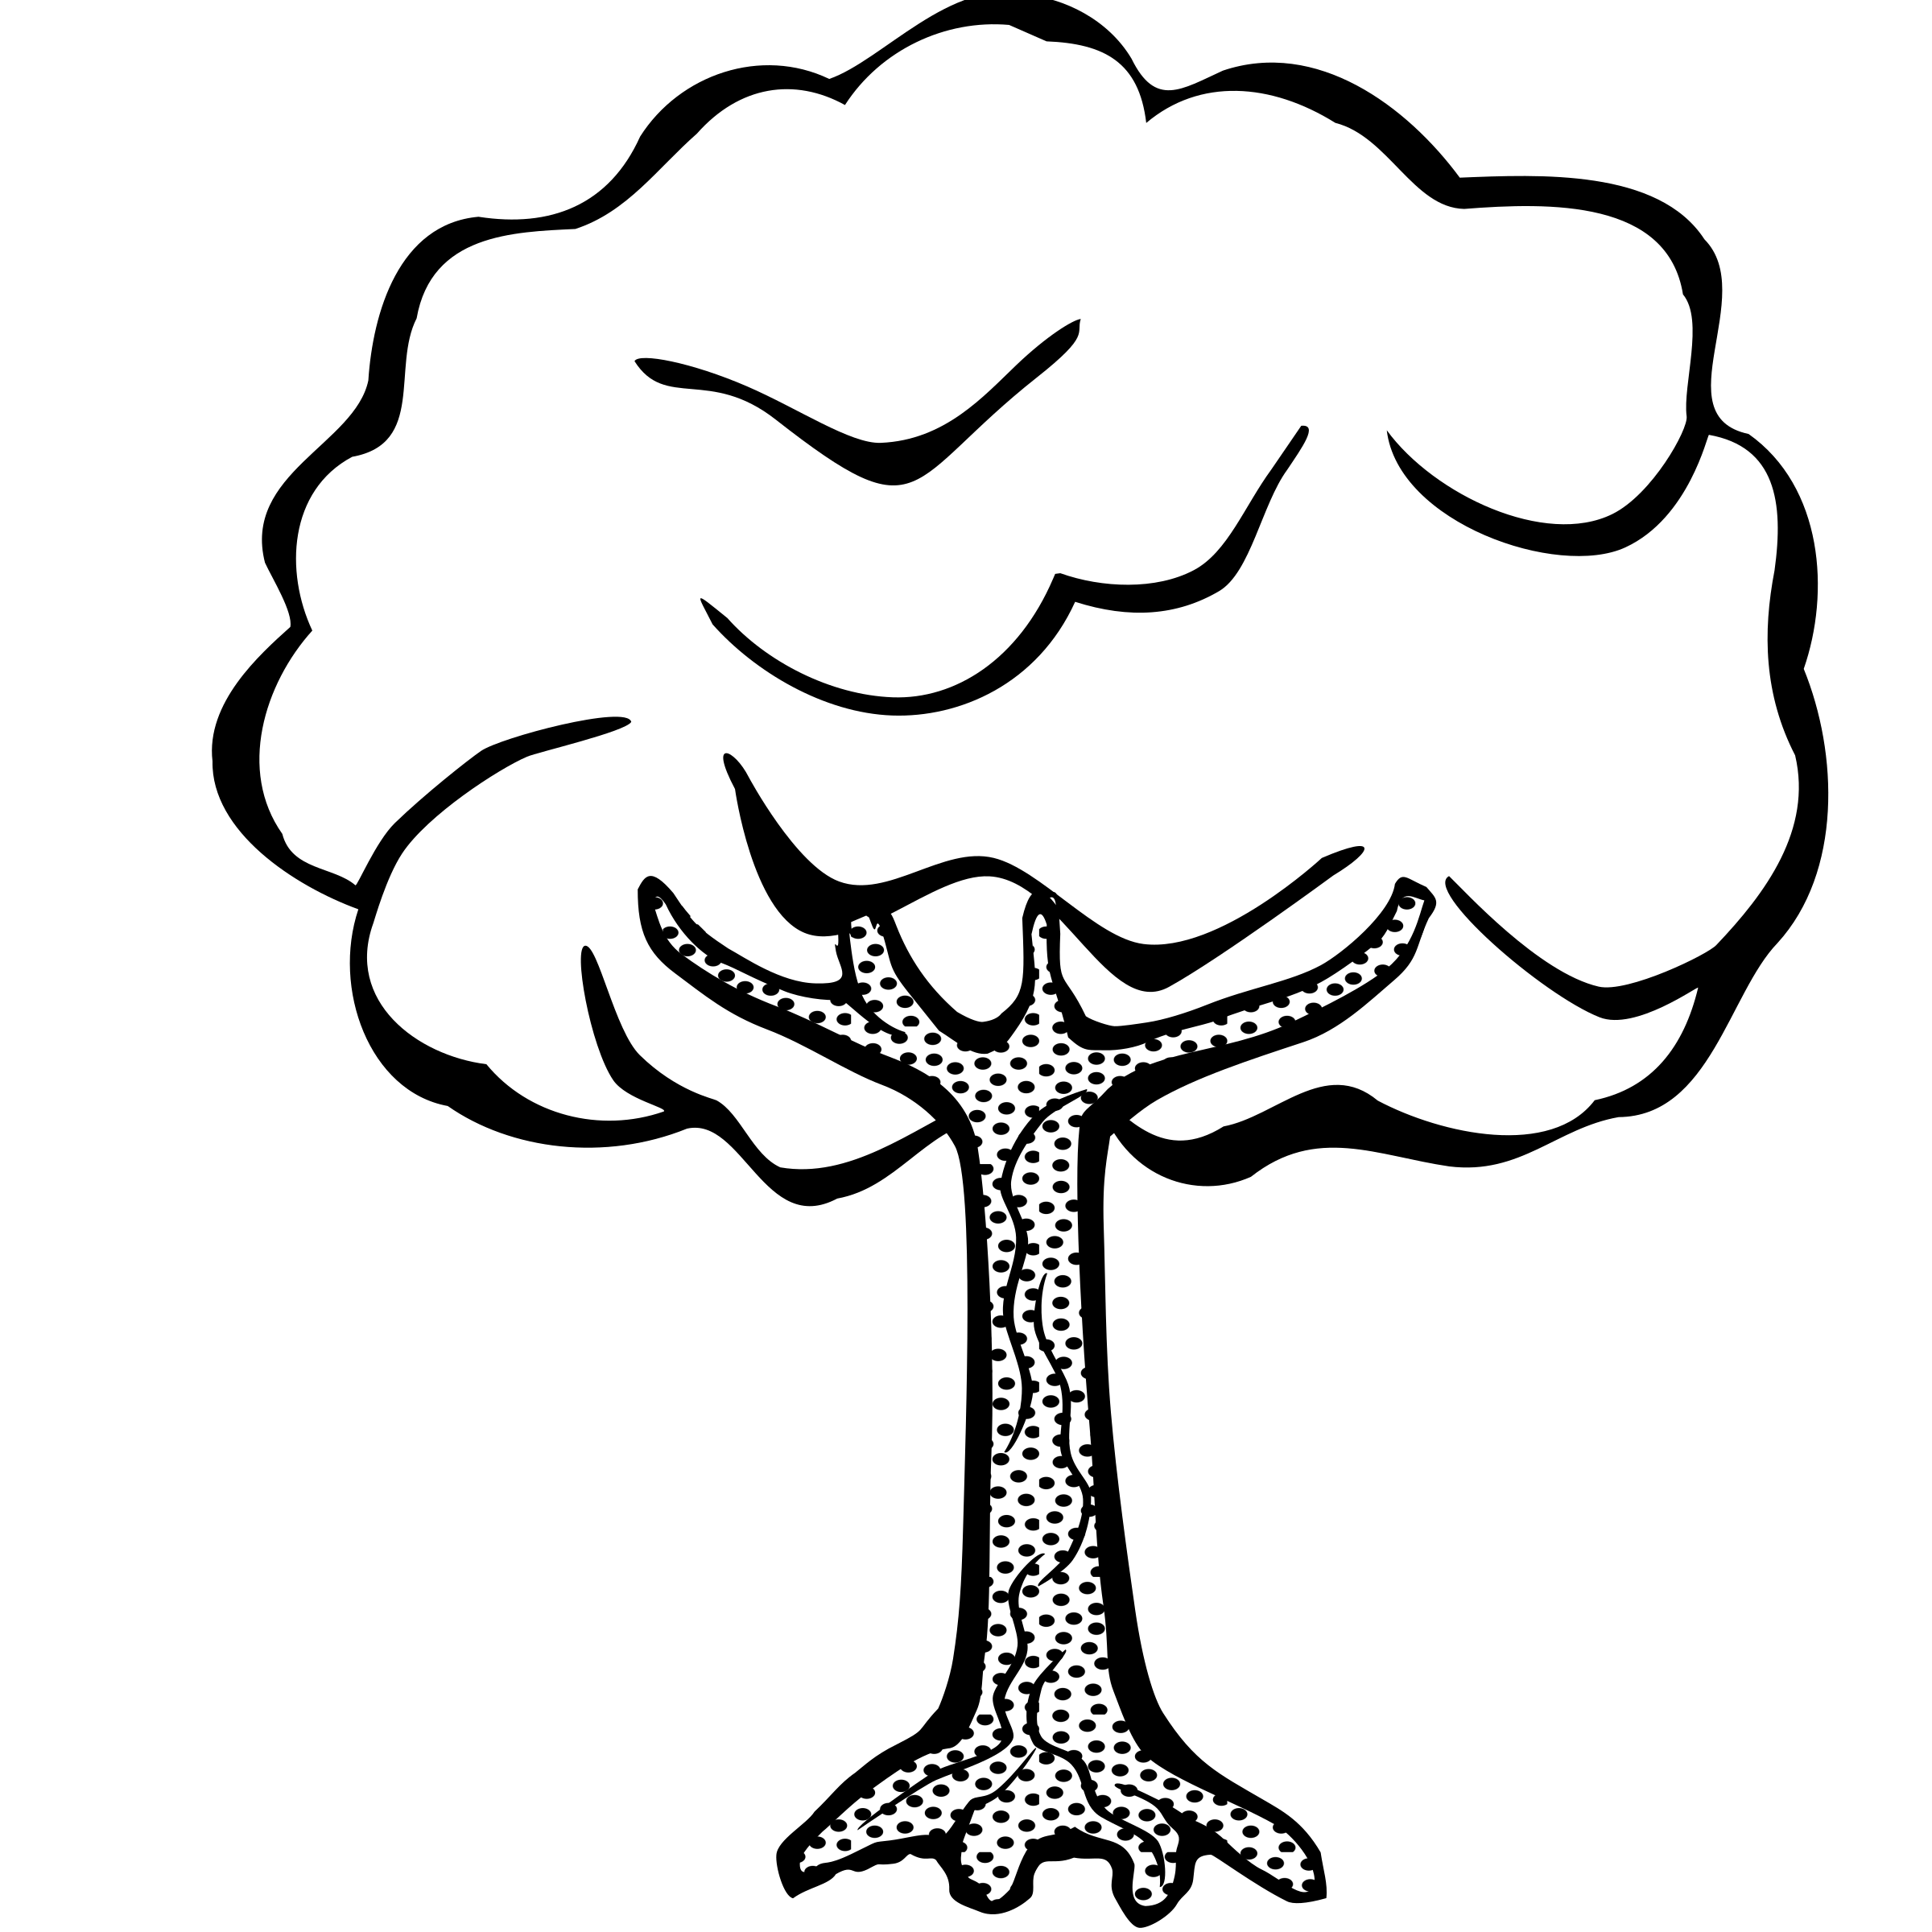 simple tree clipart black and white